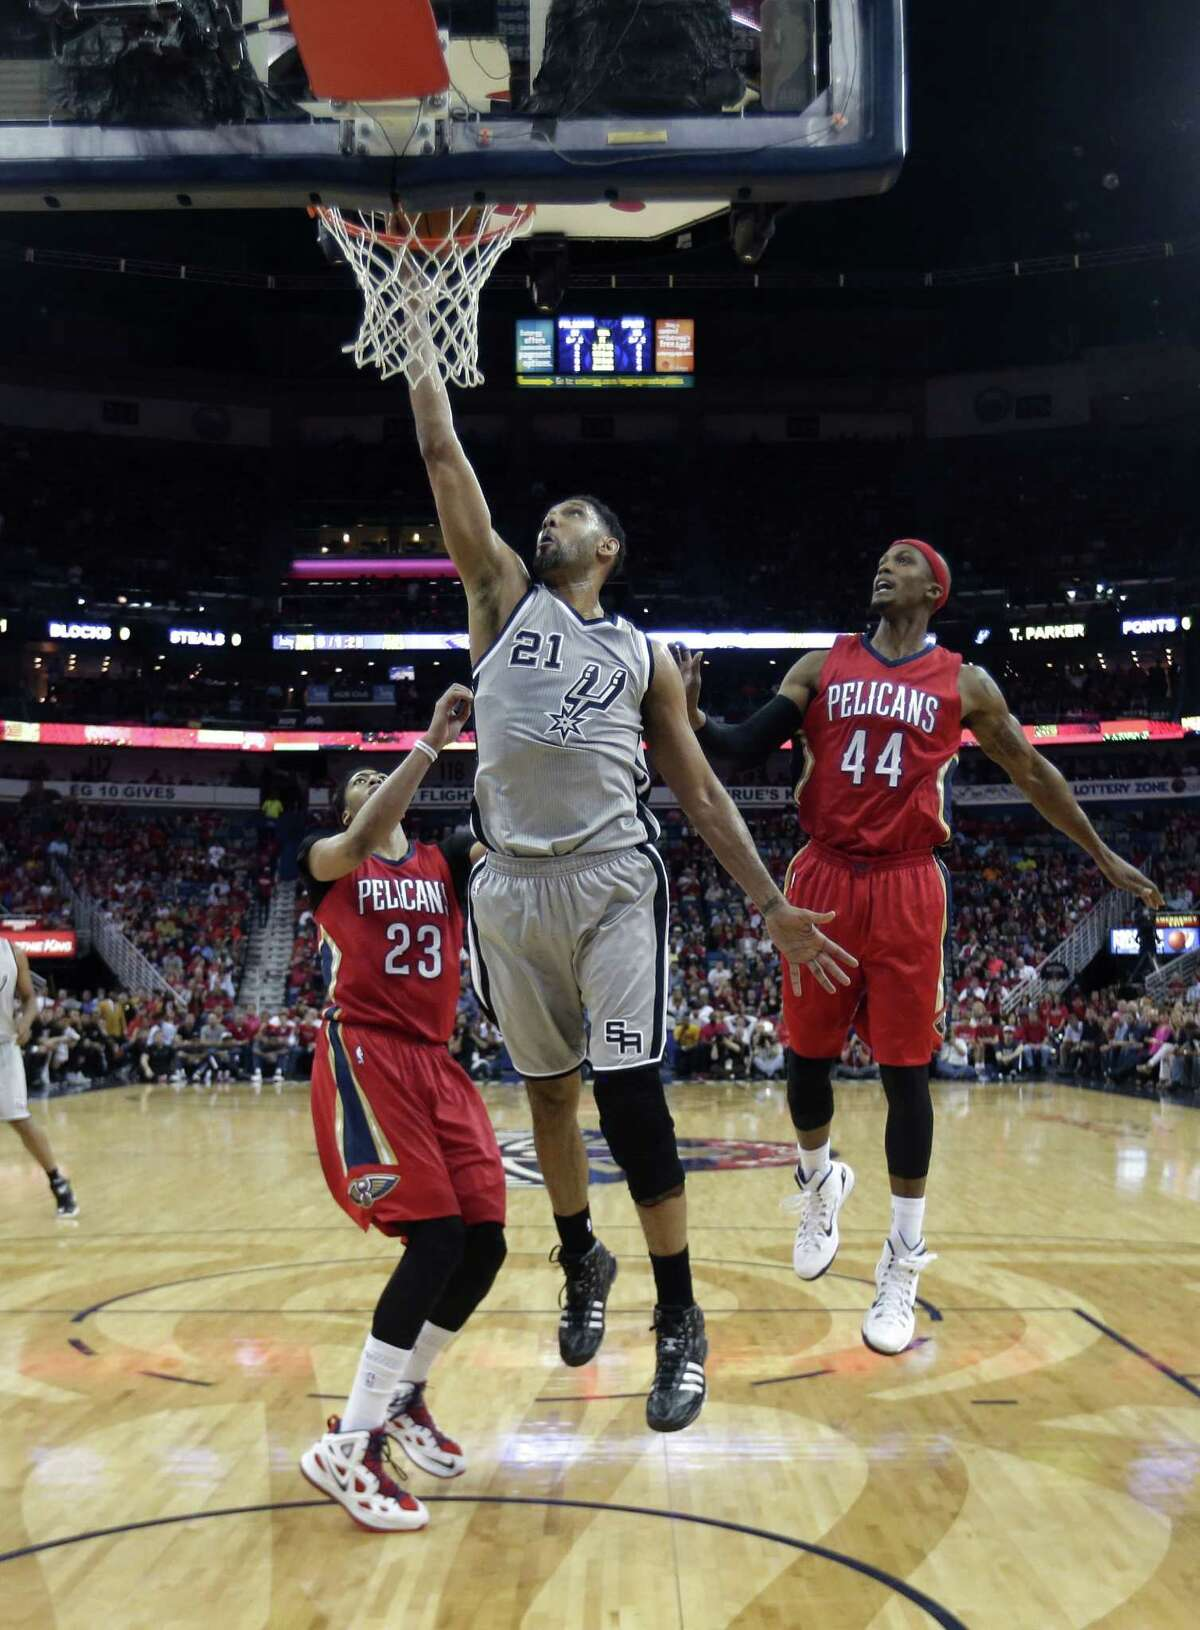 San Antonio Spurs forward Tim Duncan (21) goes to the basket in front of New Orleans Pelicans forward Anthony Davis (23) and forward Dante Cunningham (44) in the first half of an NBA basketball game in New Orleans, Wednesday, April 15, 2015.